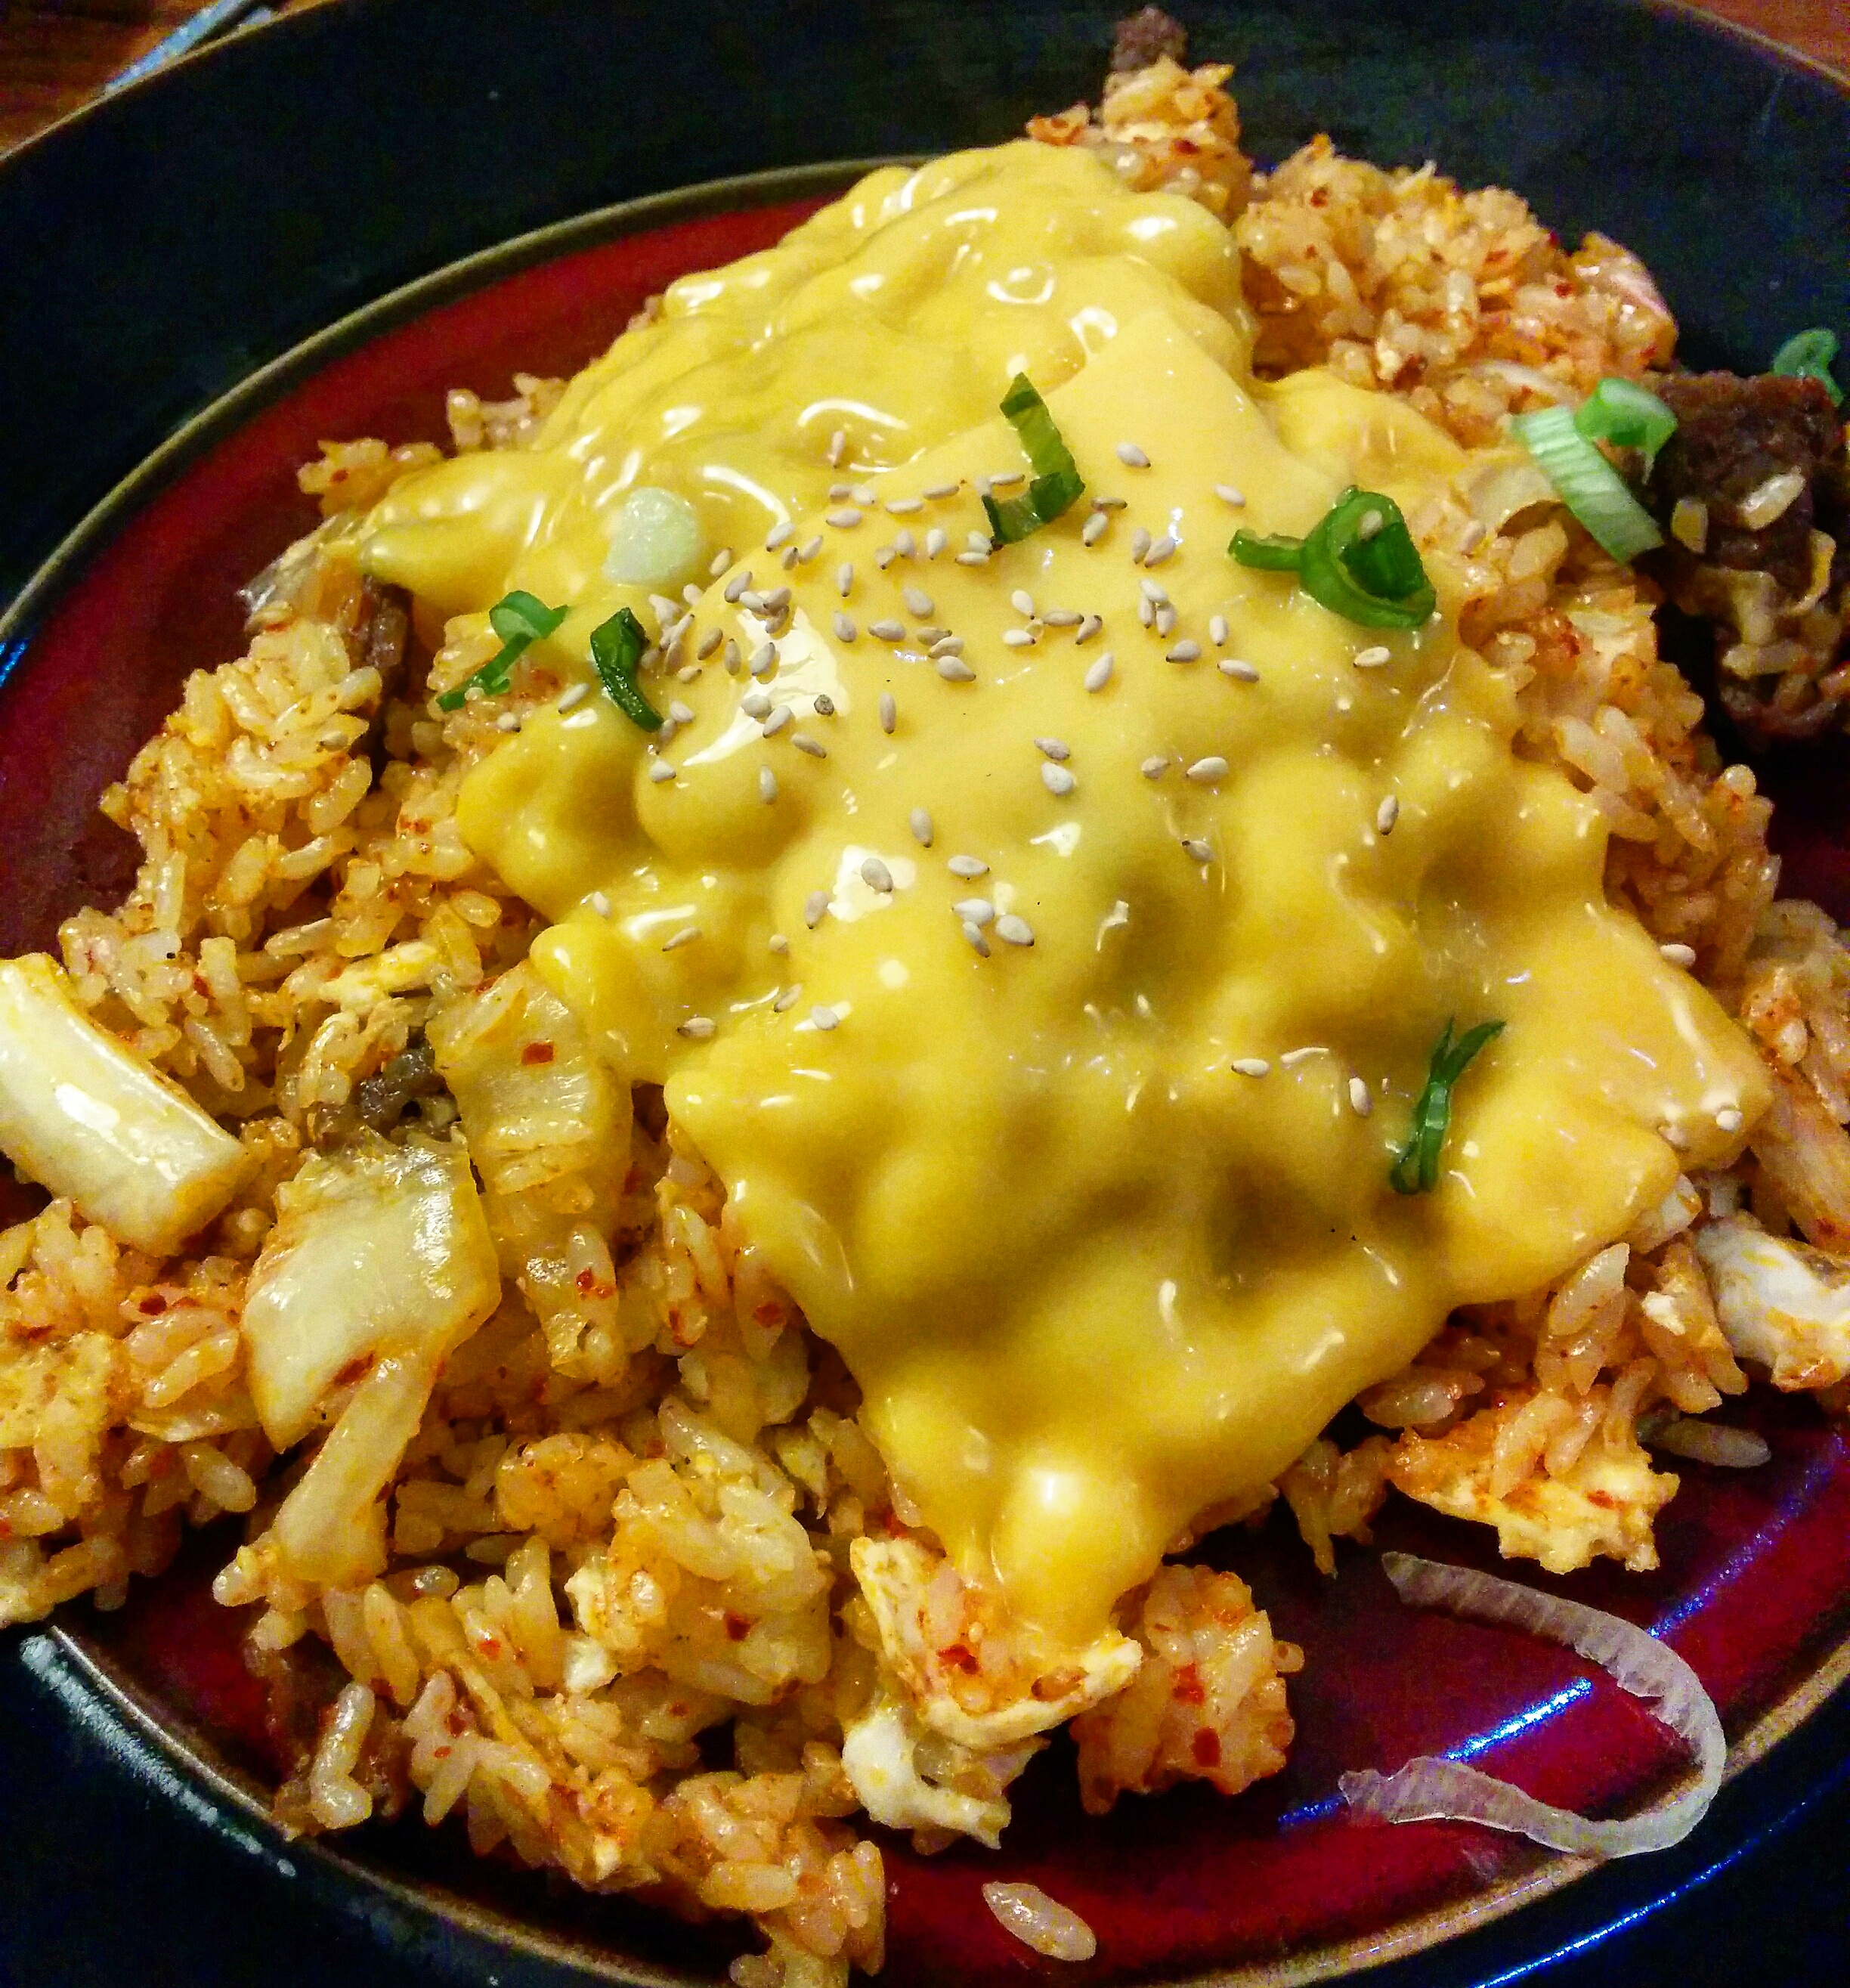 kimchi fried rice with beef and cheese from Seoul Bakery